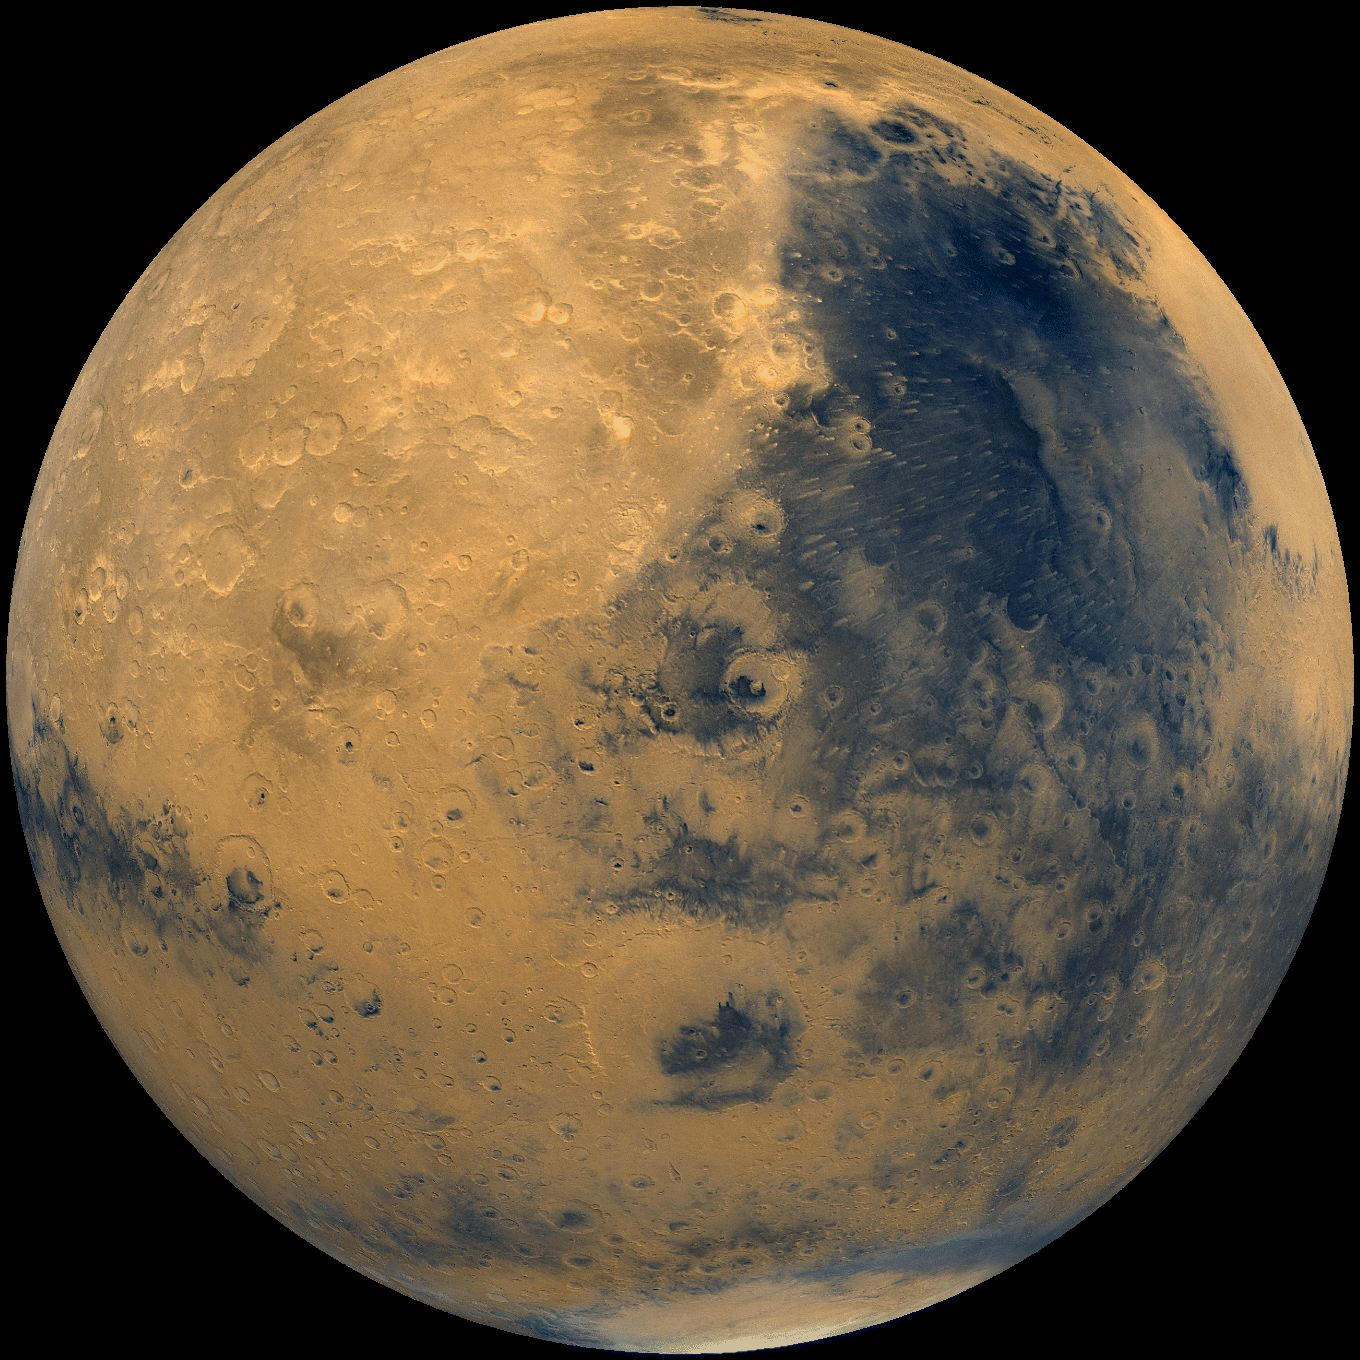 Mars or Bust! Scientists Flood NASA With 400 Ideas to Explore Red Planet